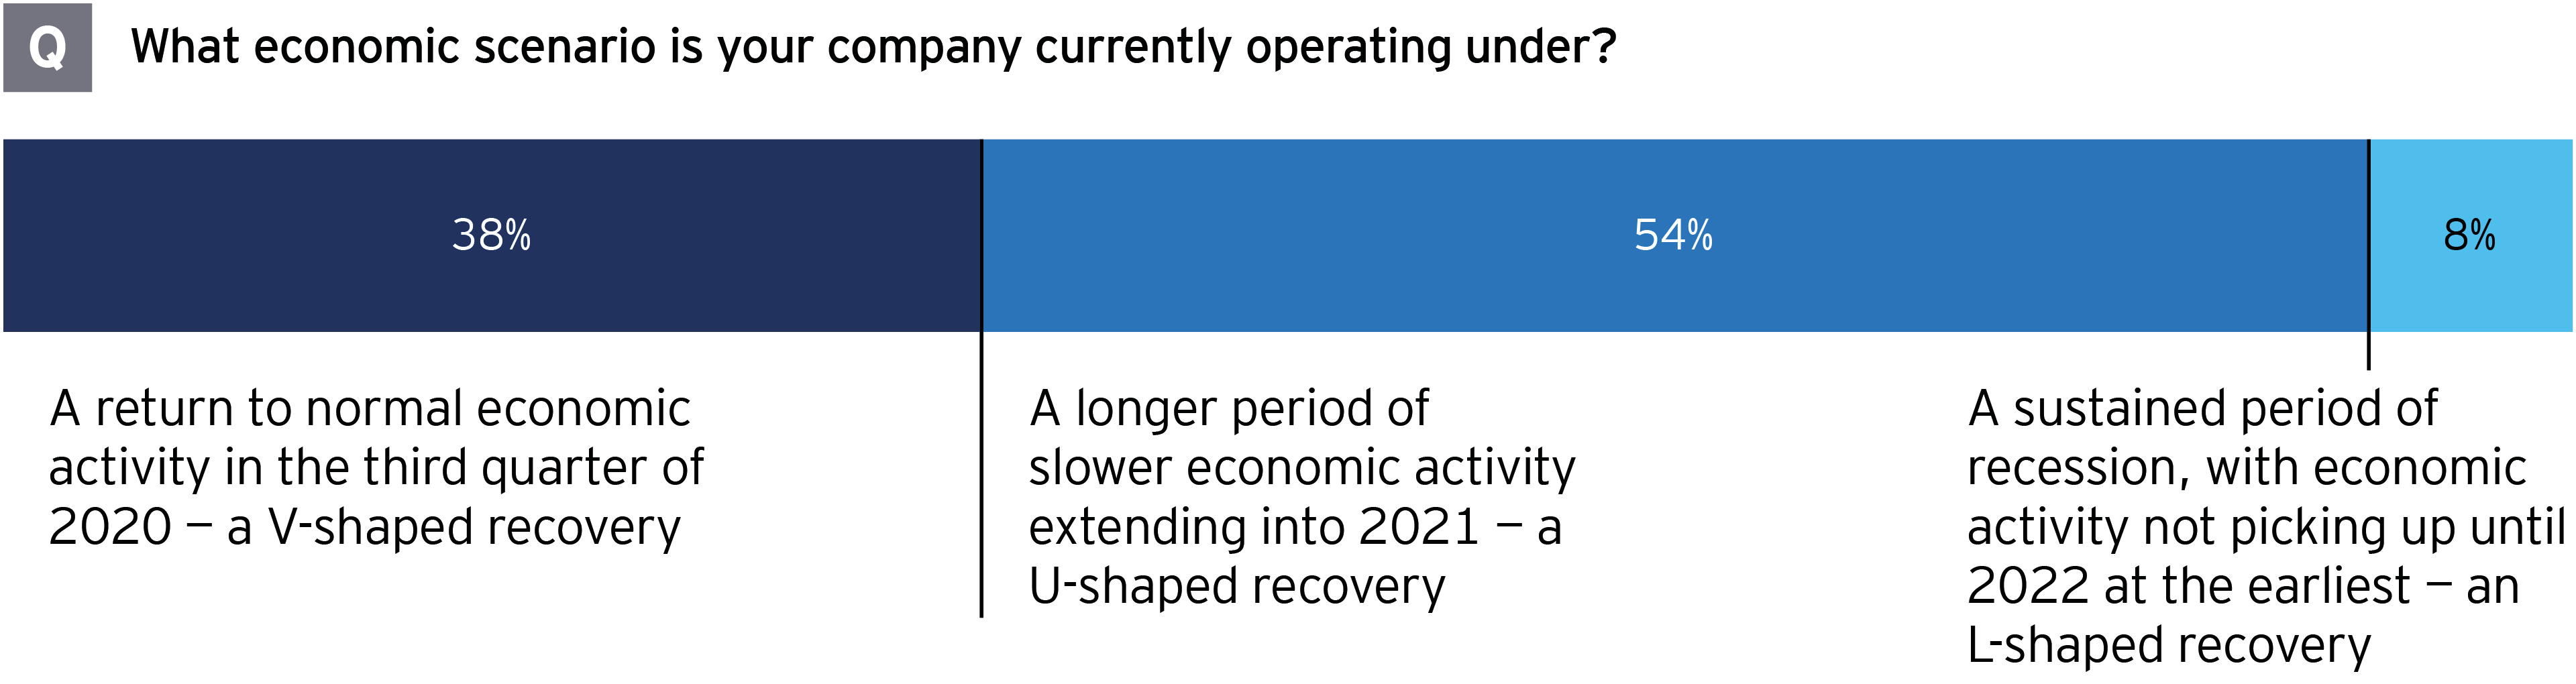 EY M&A survey what economic scenario is your company currently operating under